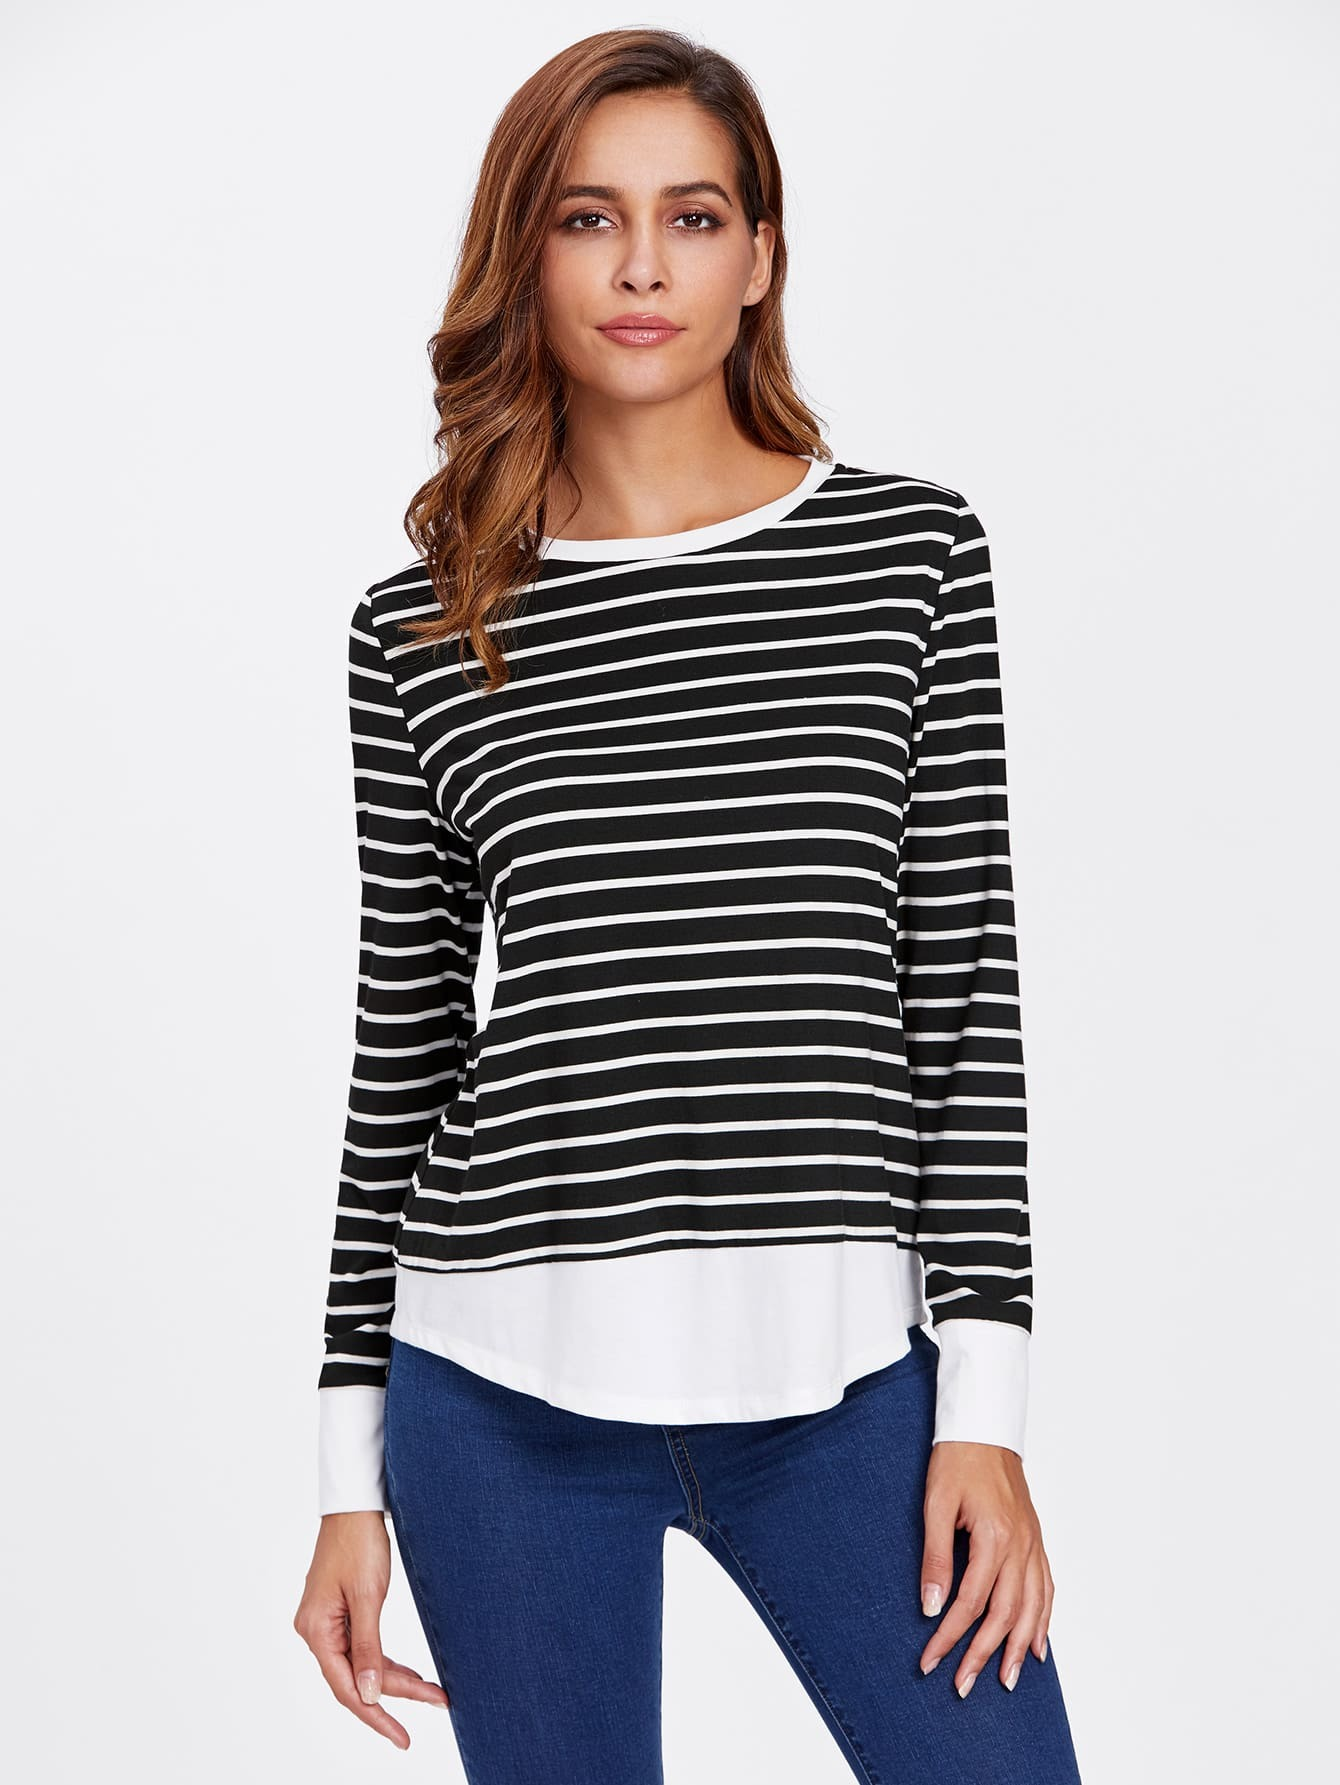 Contrast Trim Striped T-shirt tee171009704